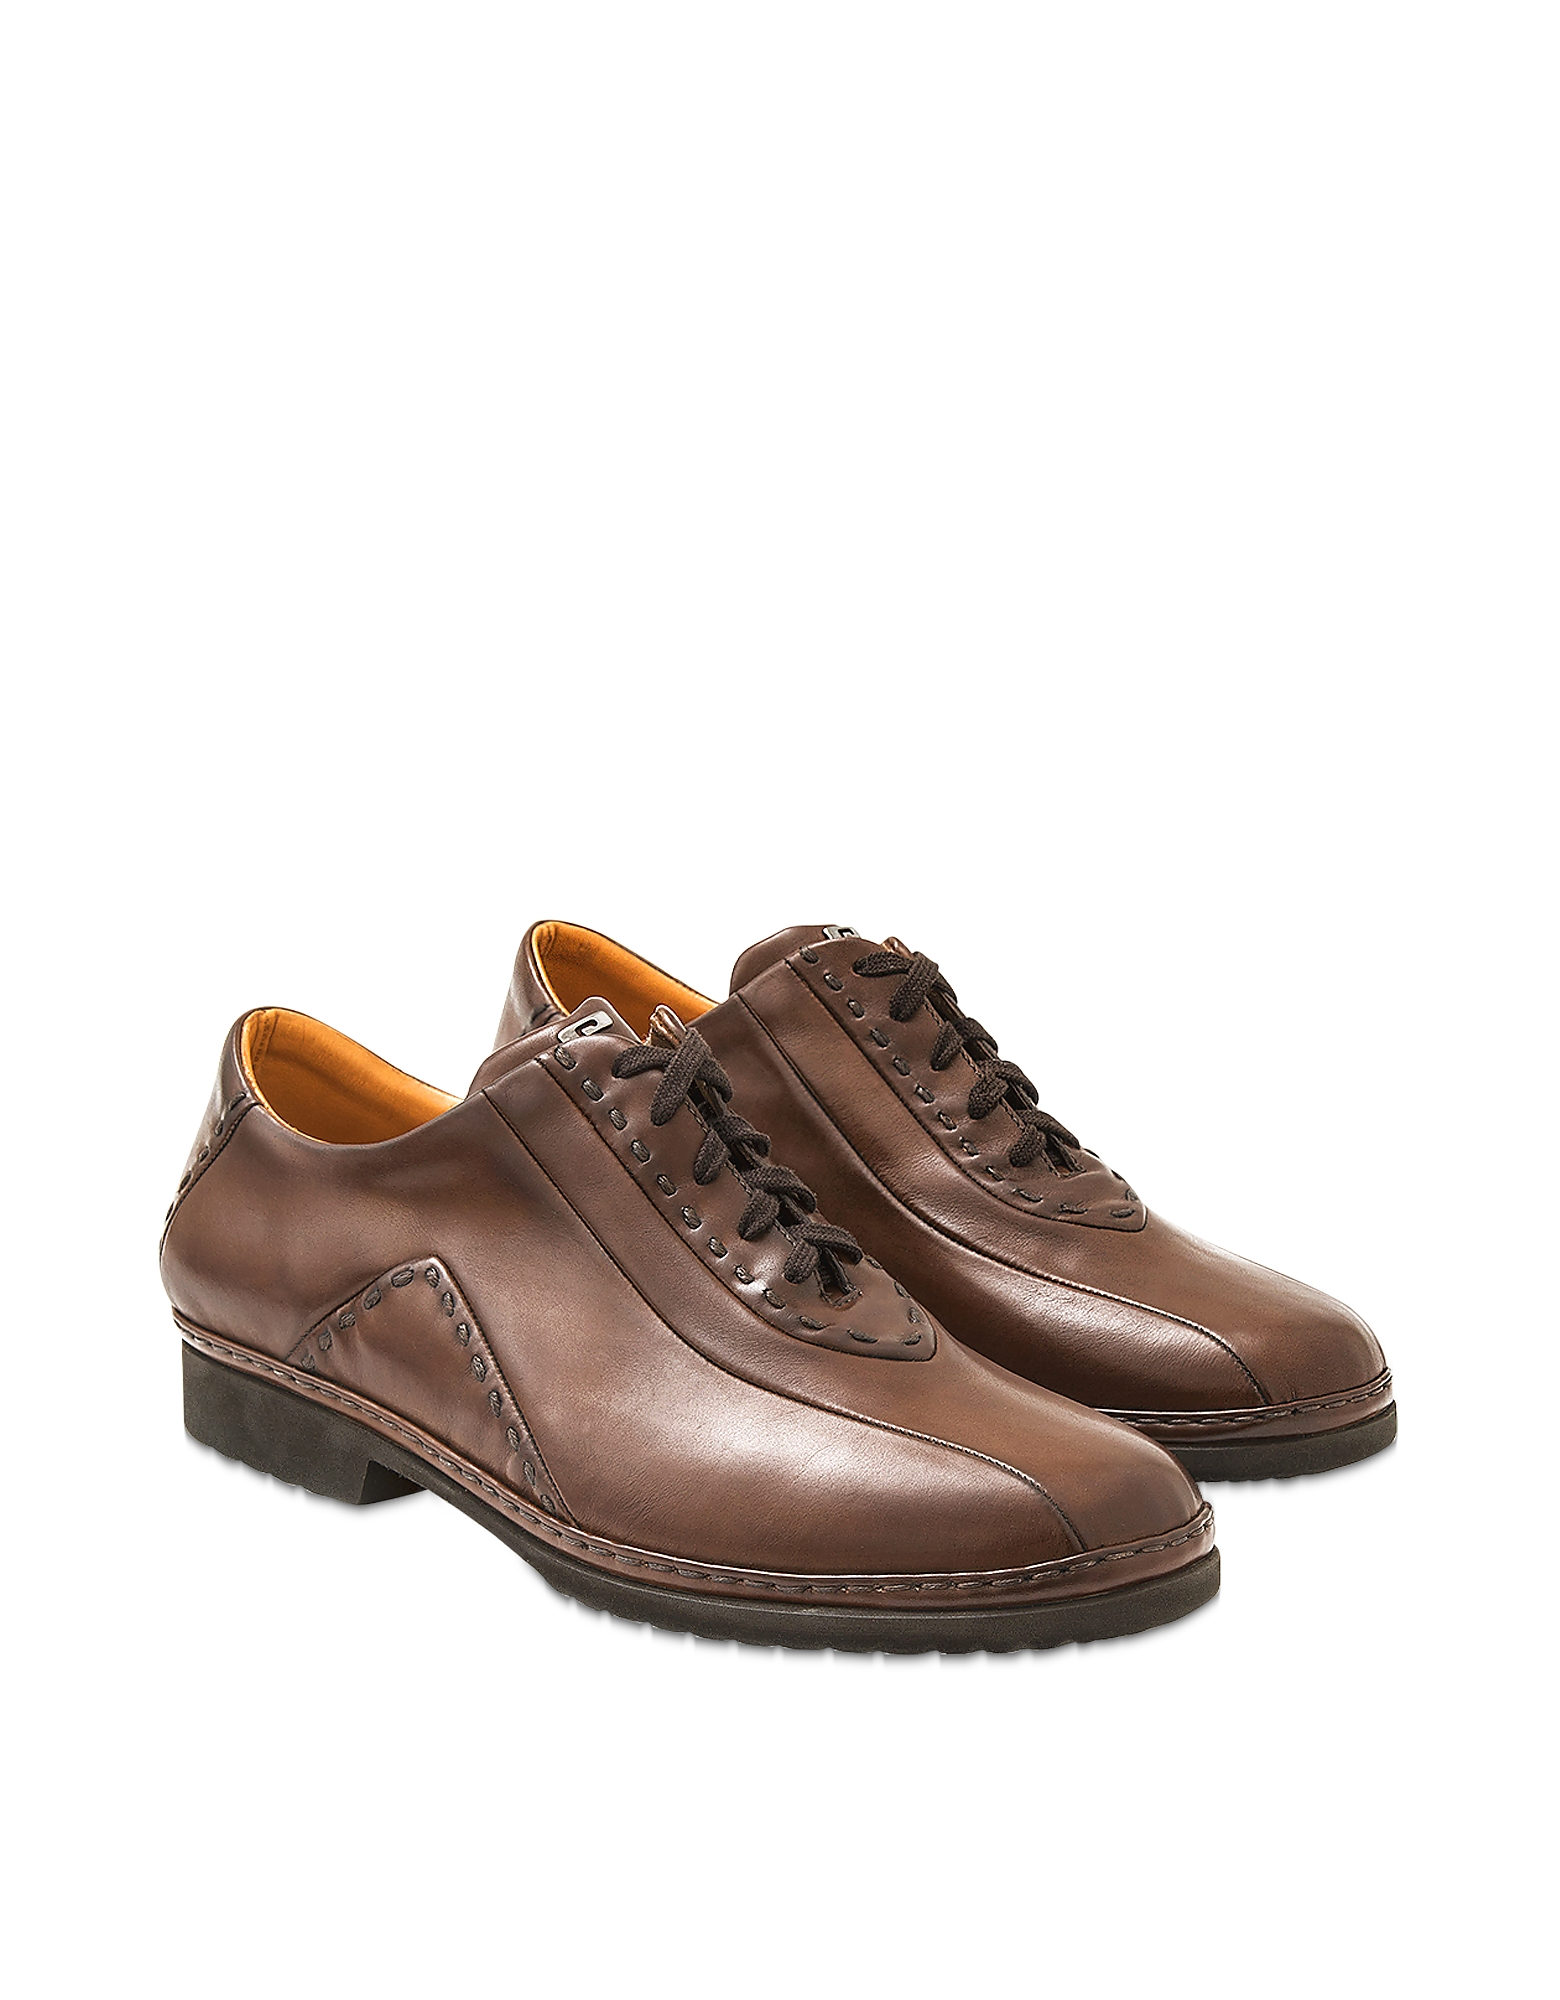 Pakerson Designer Shoes, Cocoa Italian Hand Made Leather Lace-up Shoes